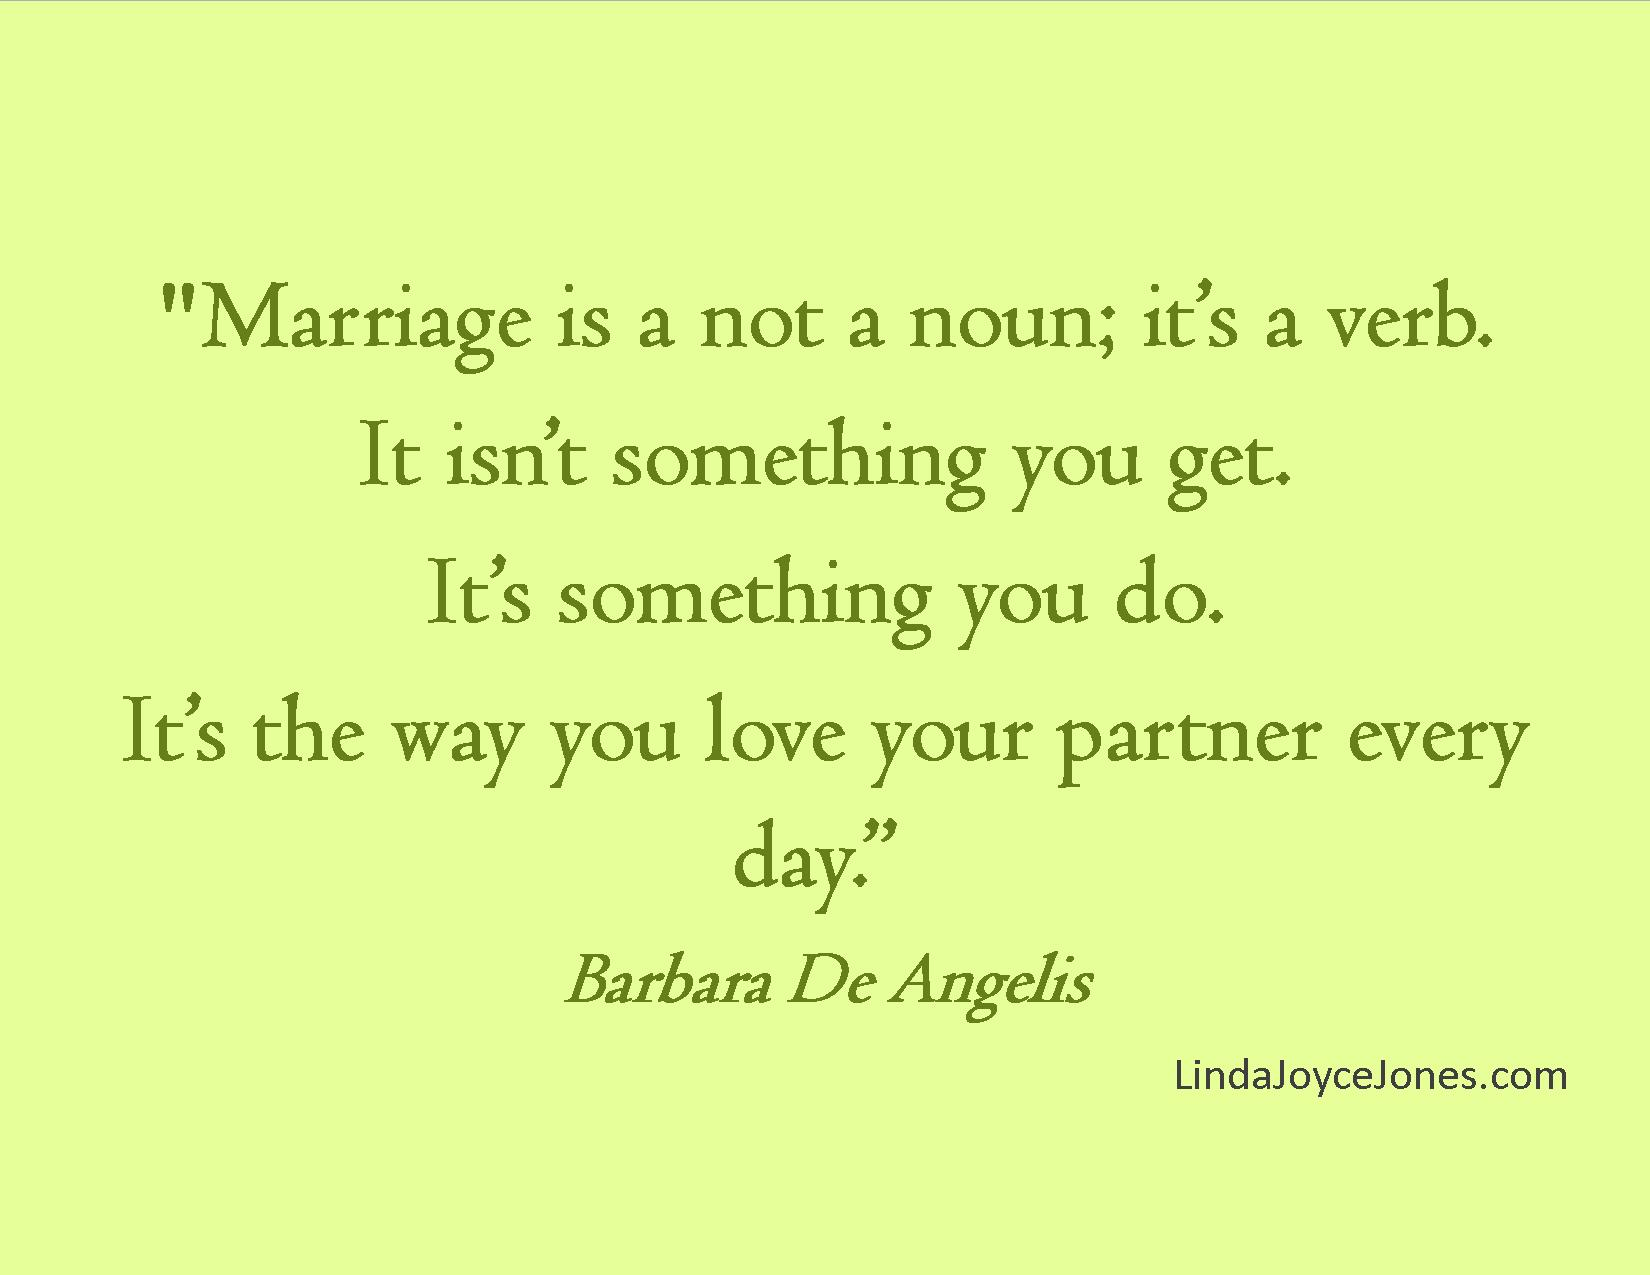 Love Marriage Quotes Quotes About Love Tagalog Tumblr And Life For Him Cover Photo